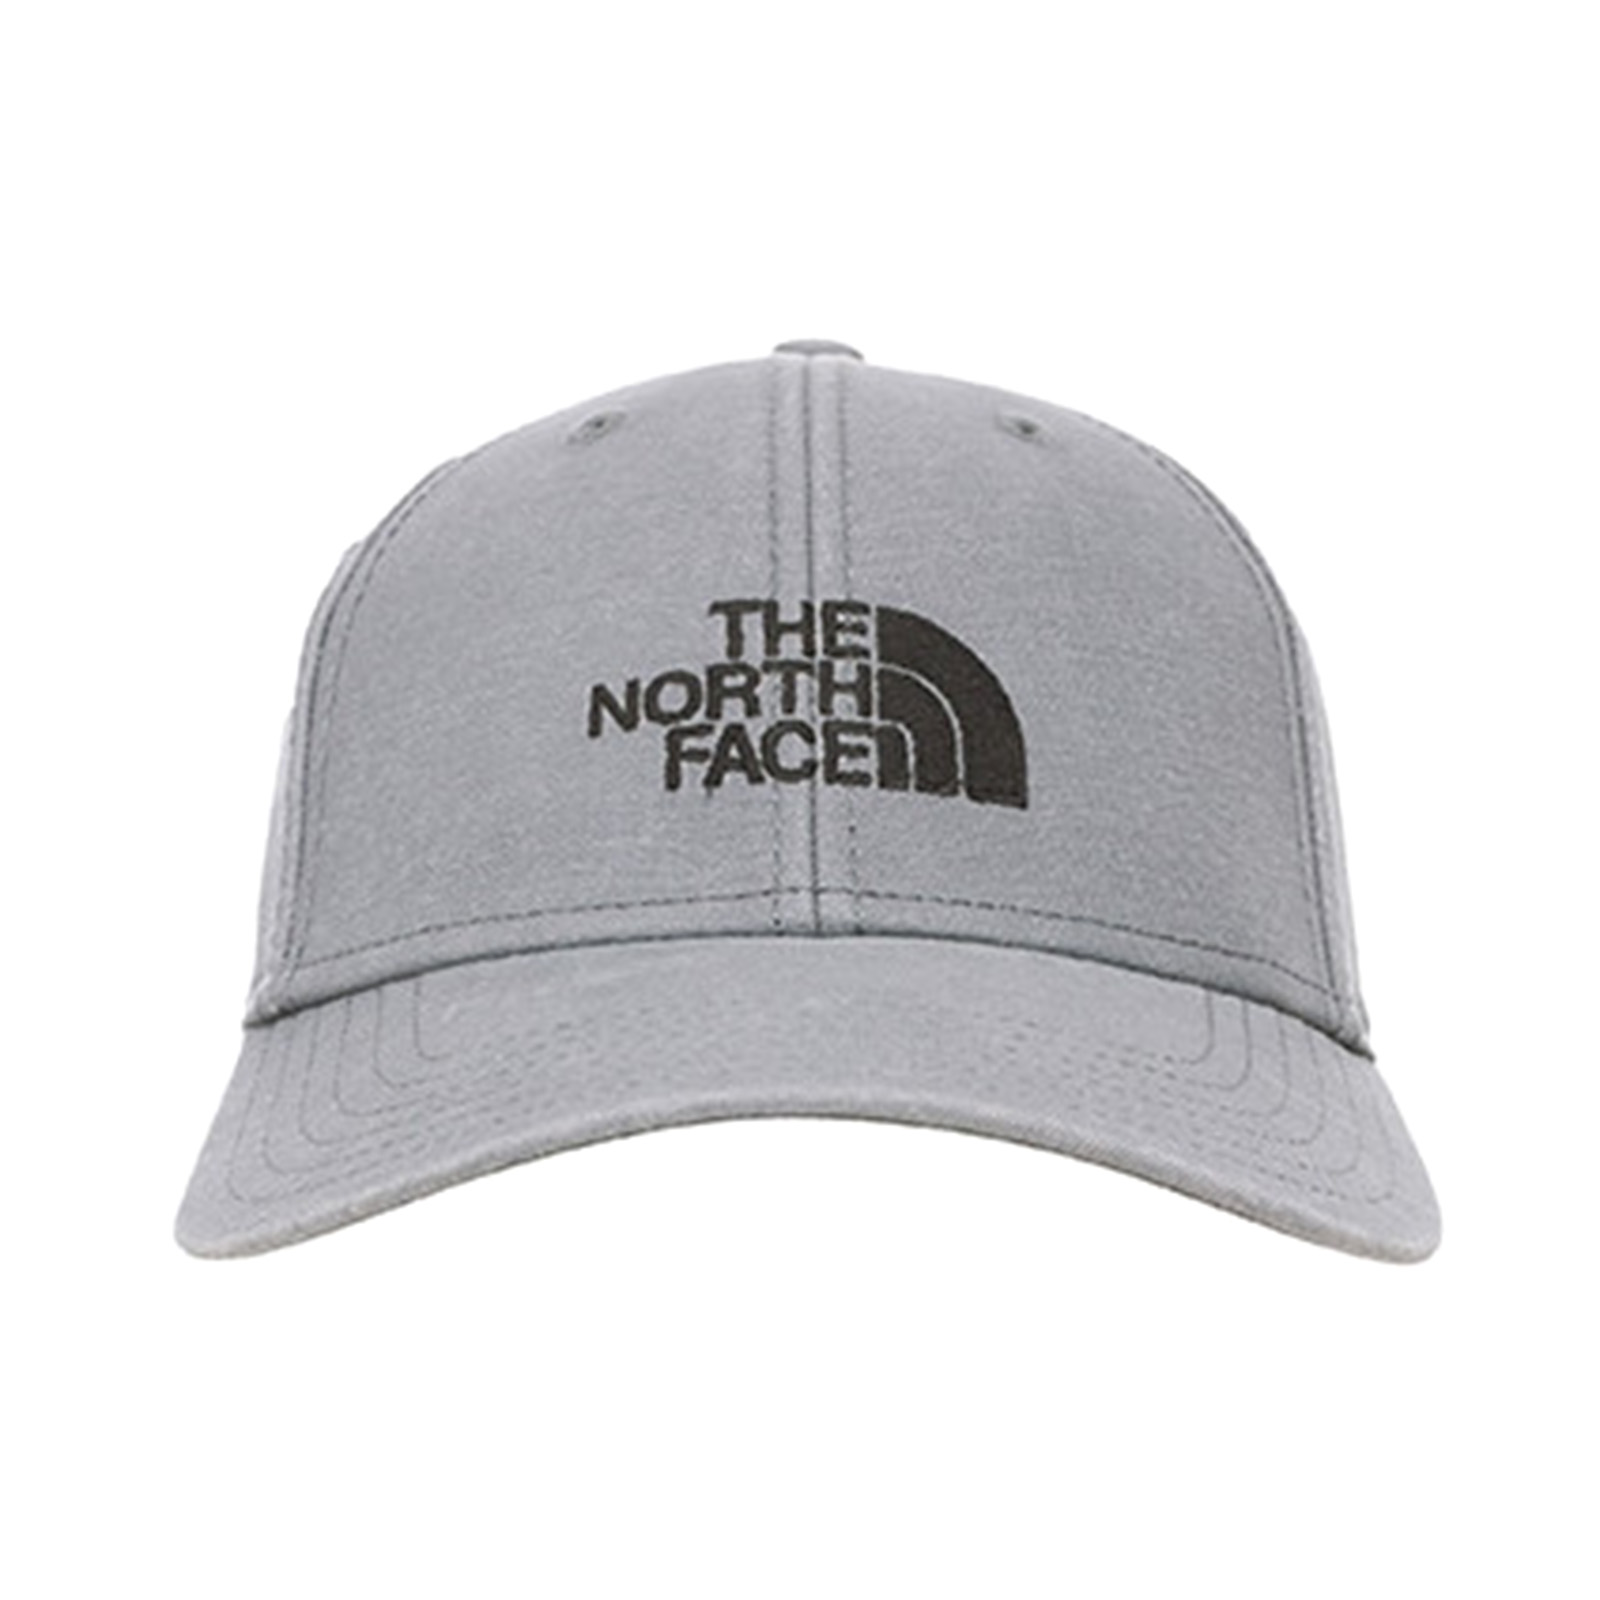 e77c90d533b The North Face Cappelli 66 Classic Hat Mid Grey Grigio